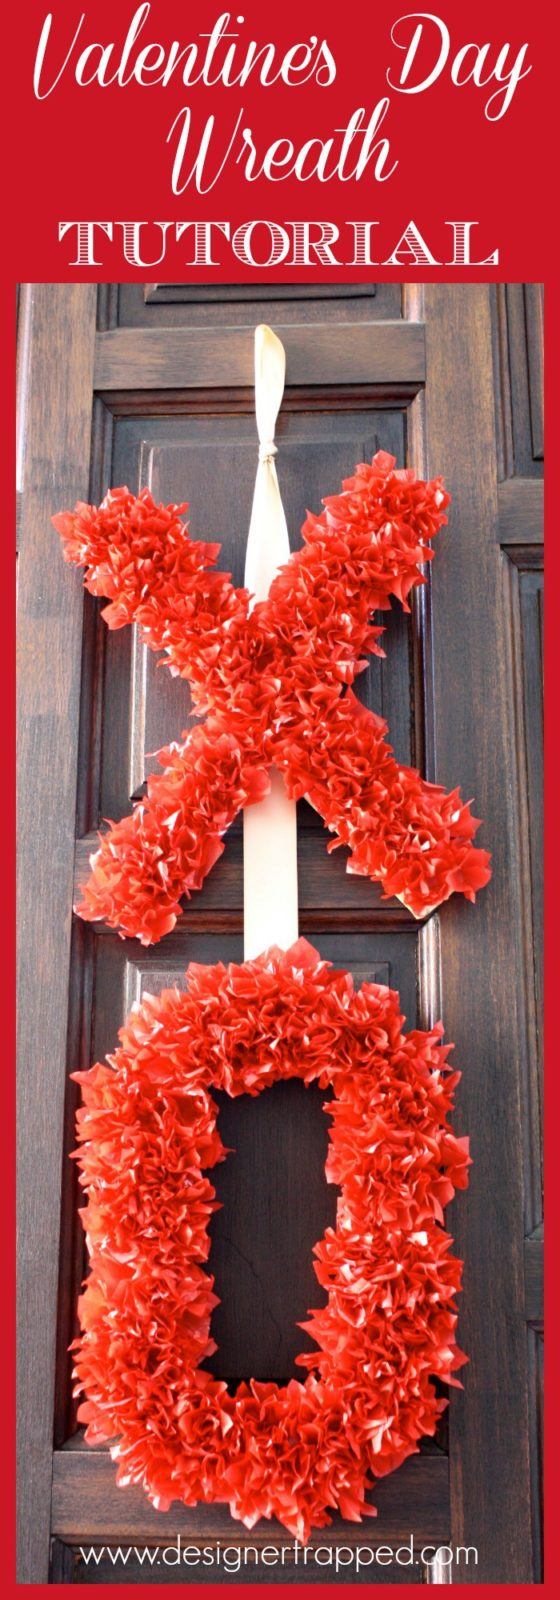 Tissue Paper Valentine's Day Wreath Tutorial by Designer Trapped in a Lawyer's Body {www.designertrapped.com}